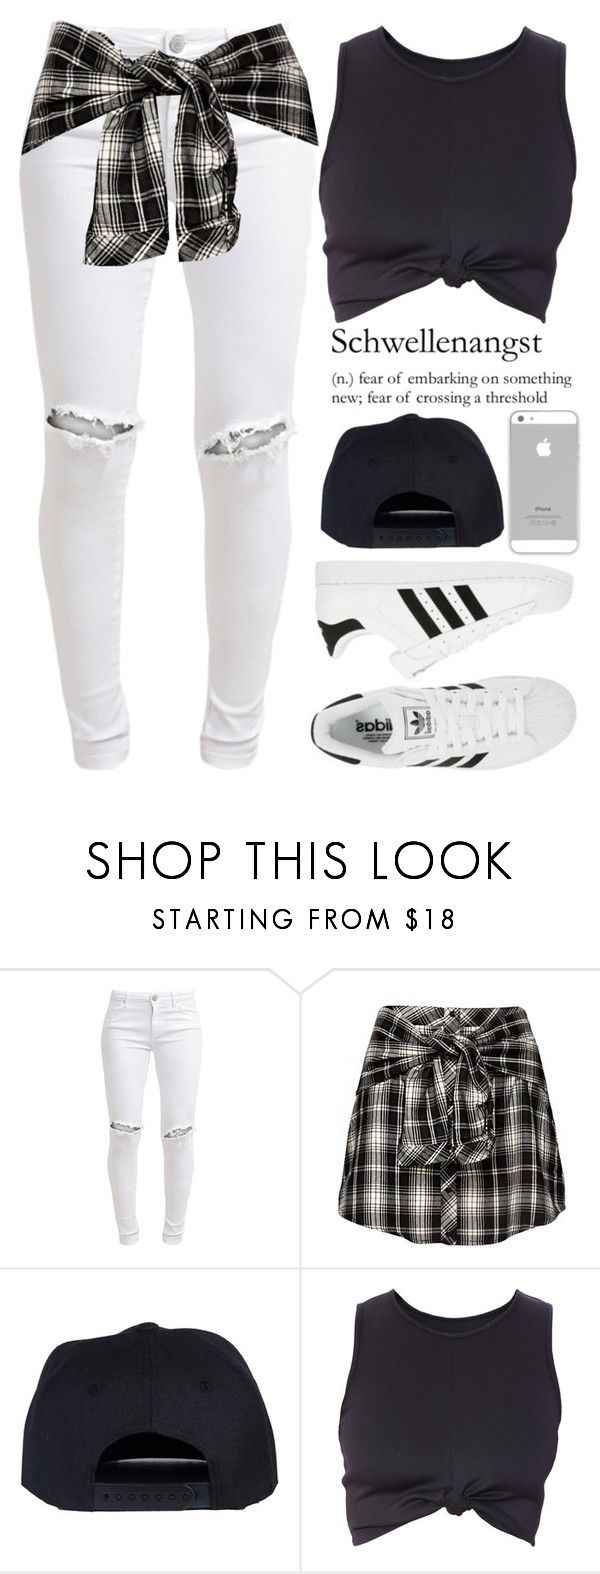 """july 28, 2015"" by inesdinis7 ❤ liked on Polyvore featuring FiveUnits and adidas"